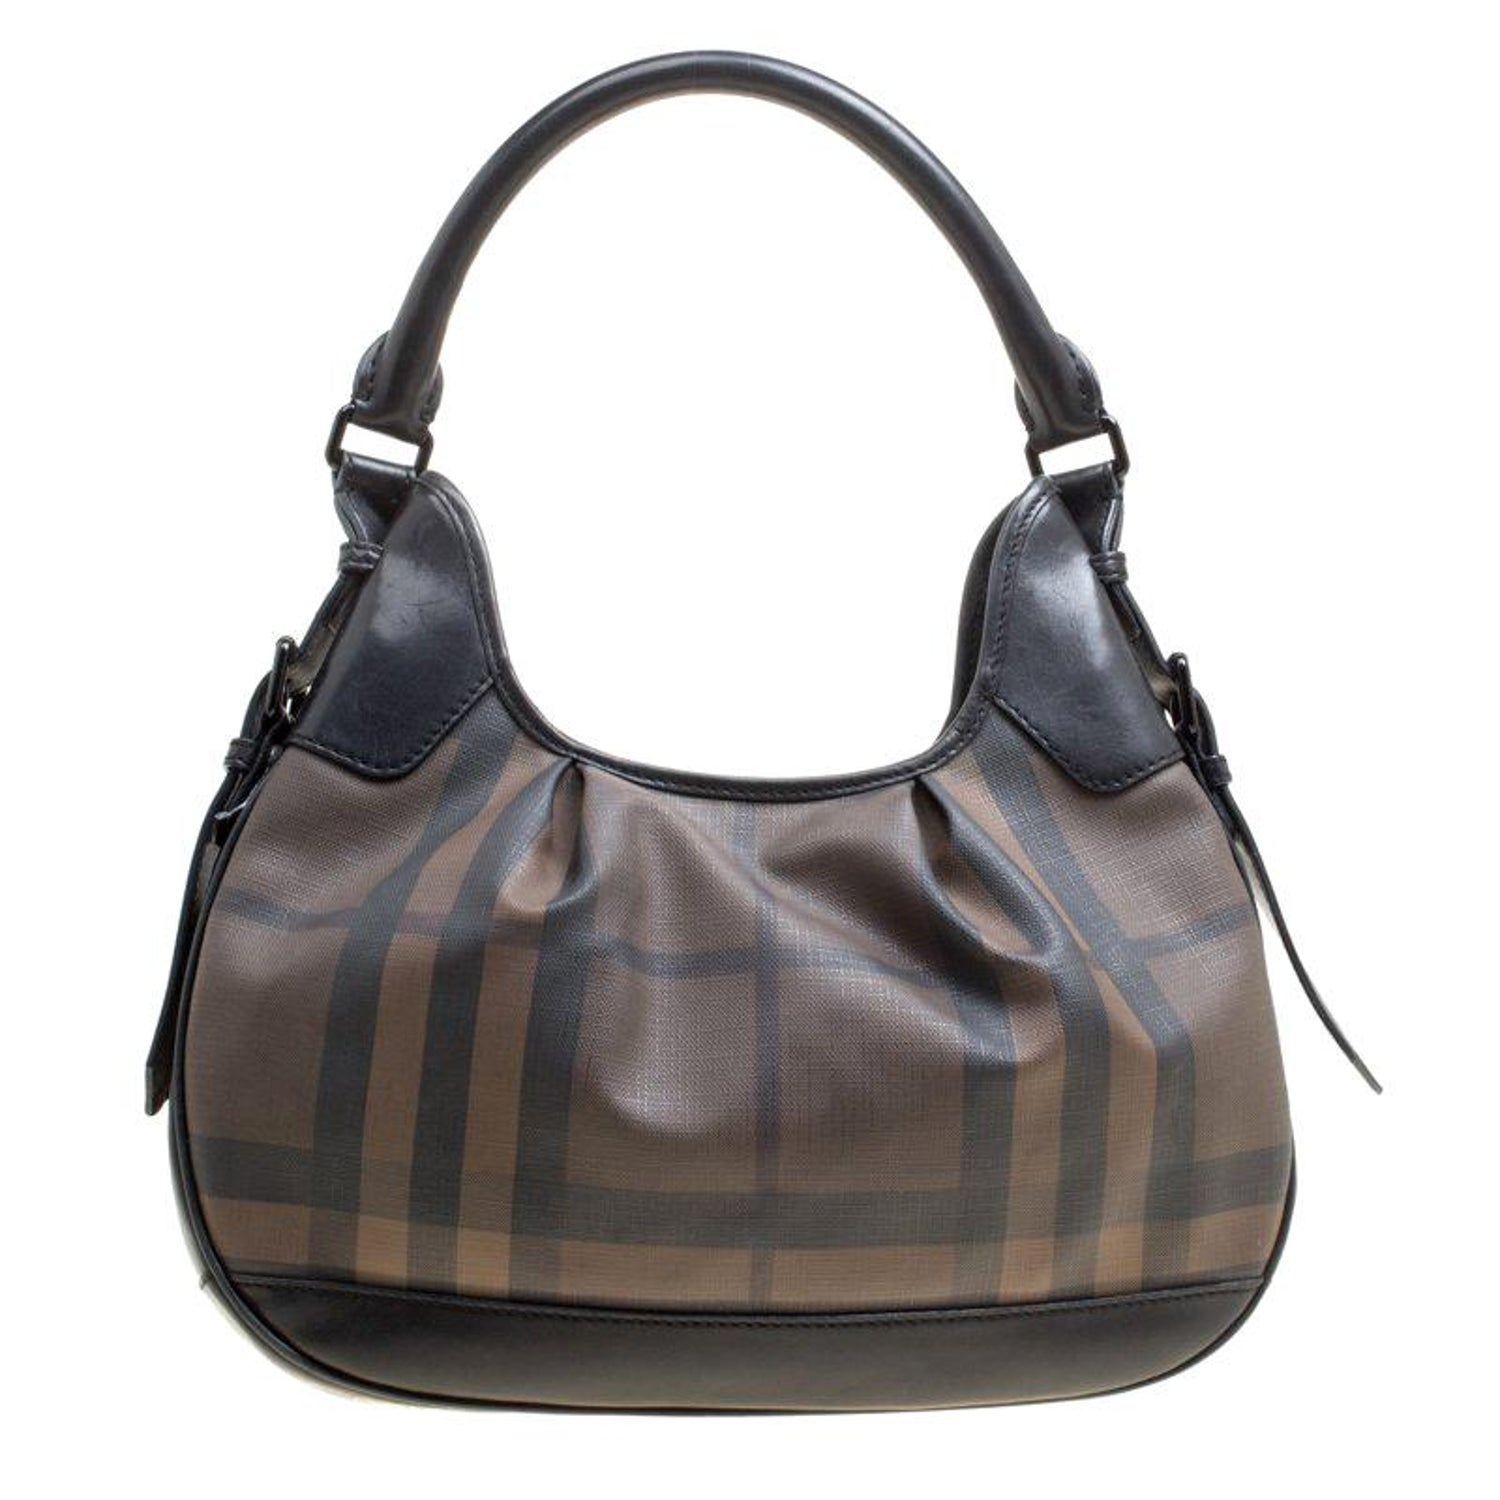 f5bfb89f1598 Burberry Brown Black Nova Check PVC and Leather Small Brooklyn Hobo For  Sale at 1stdibs